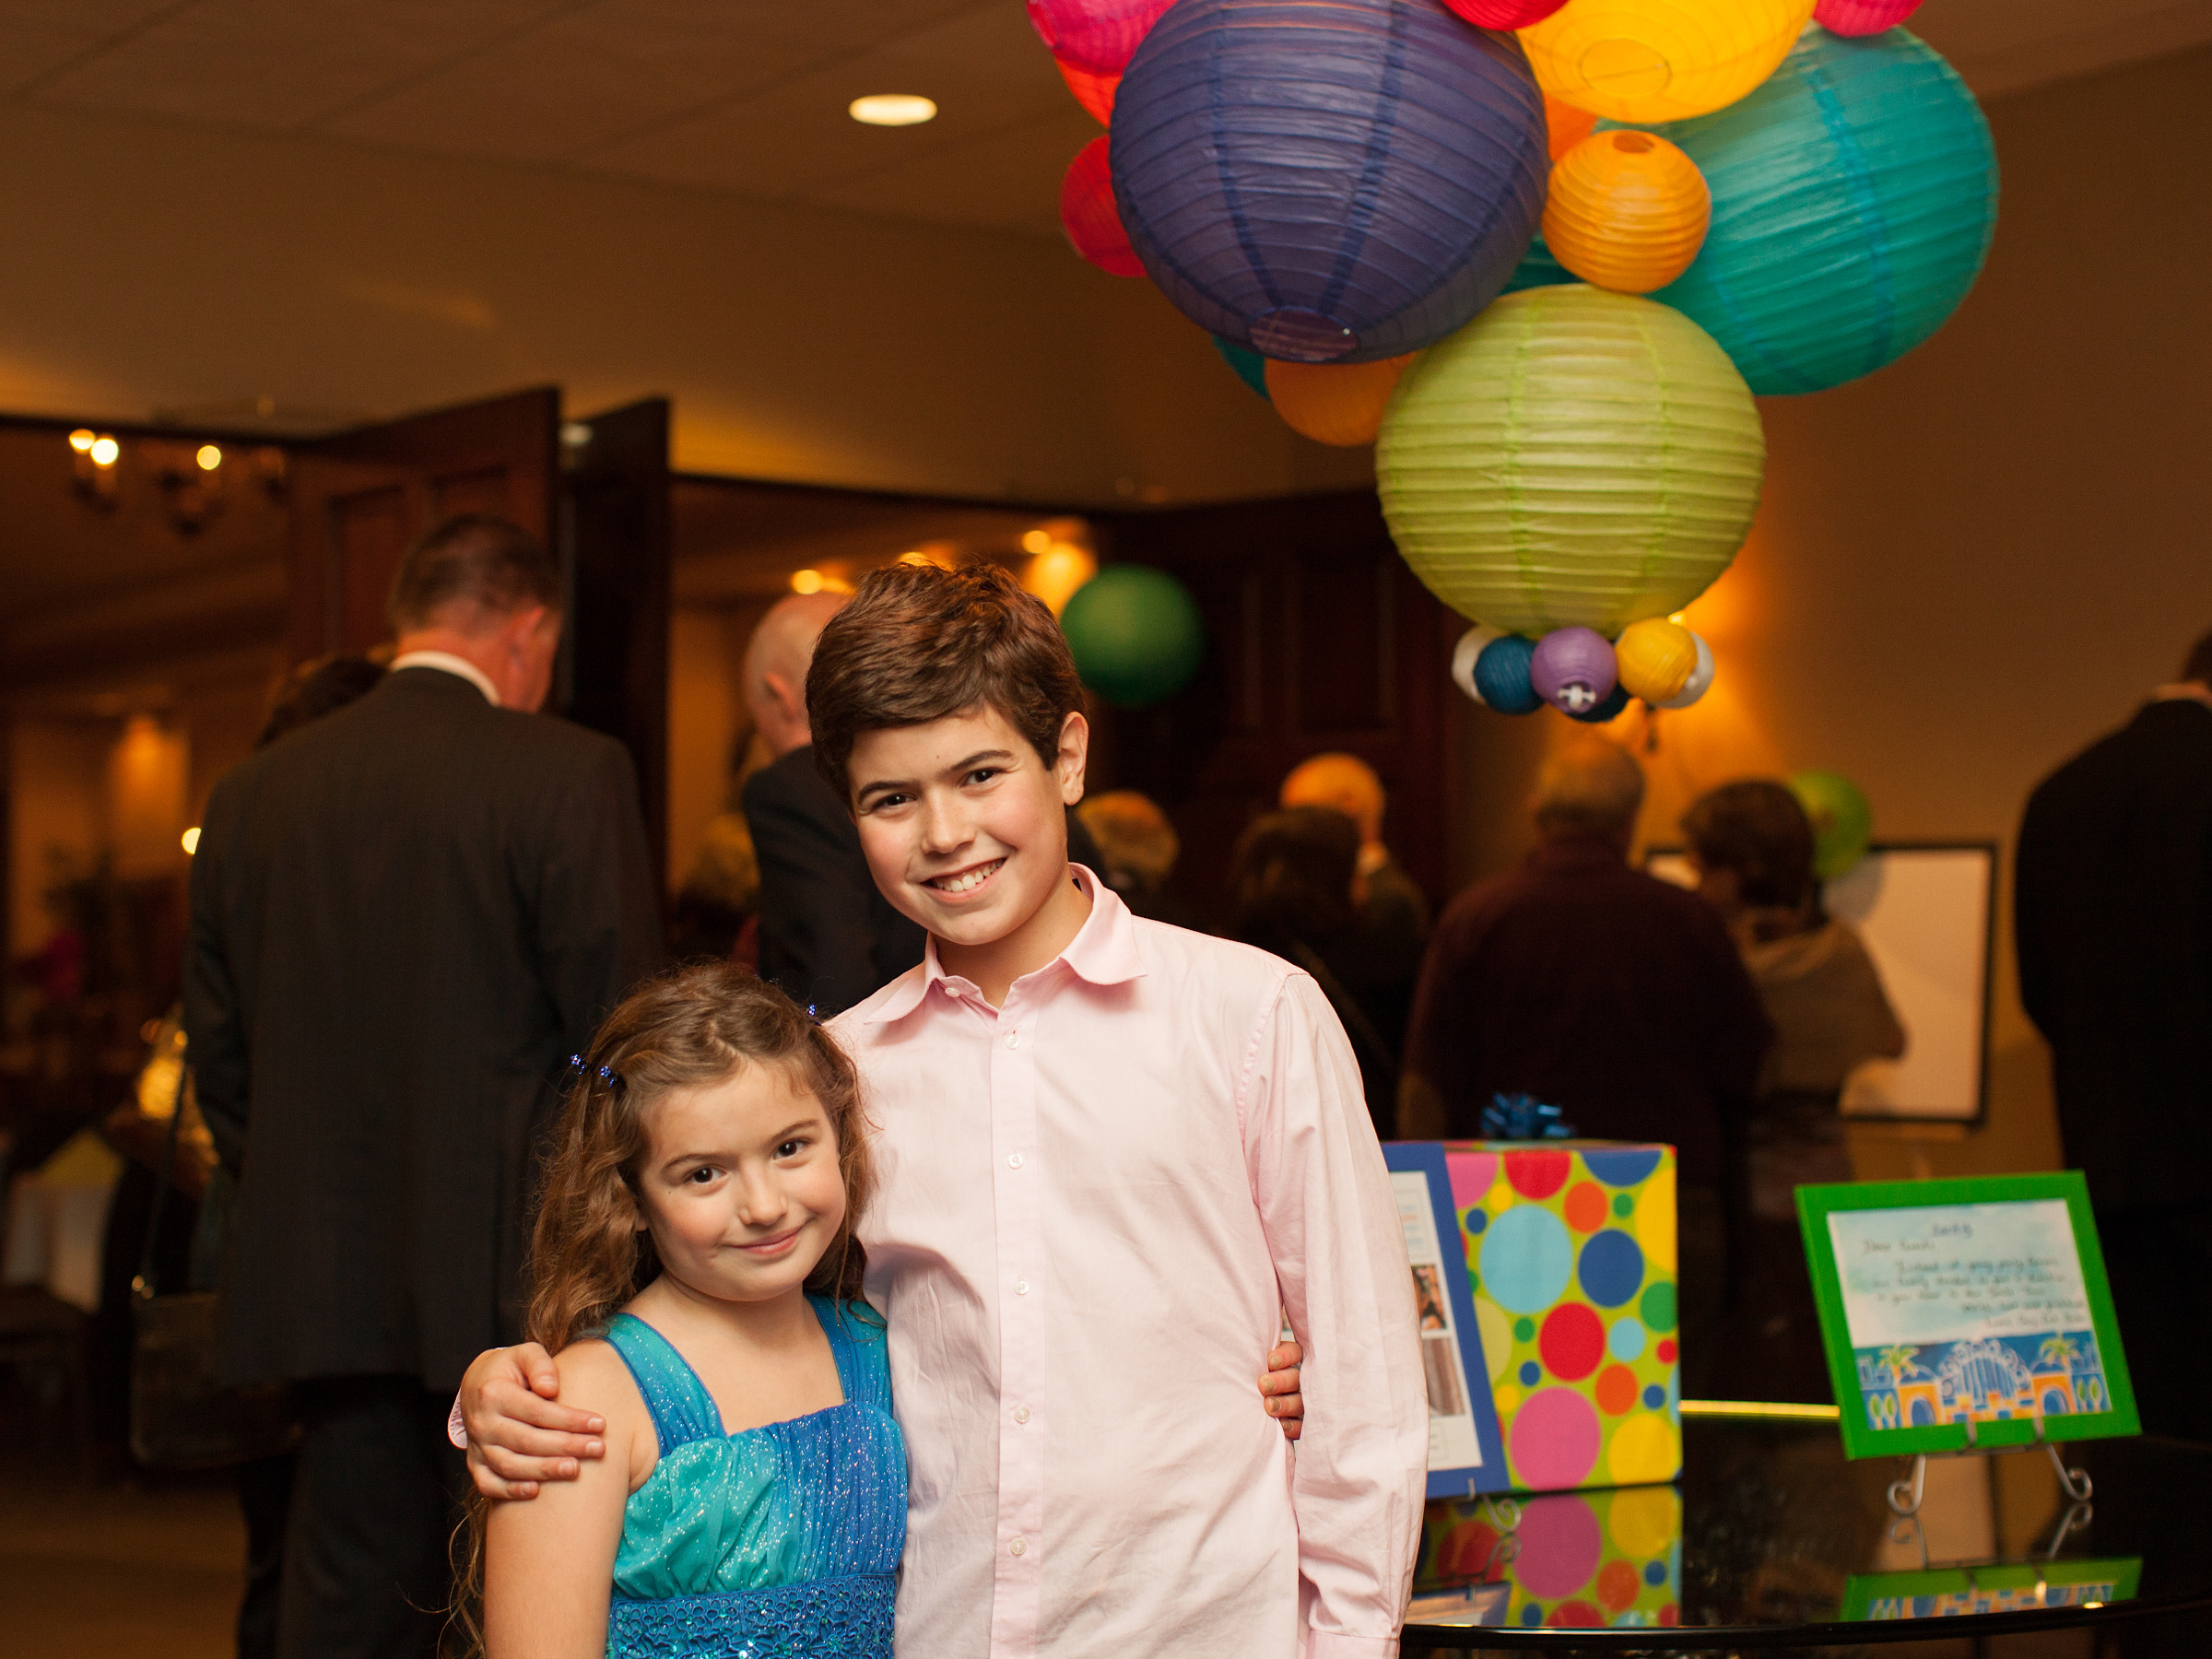 Zach_Bar_Mitzvah_Blog_06